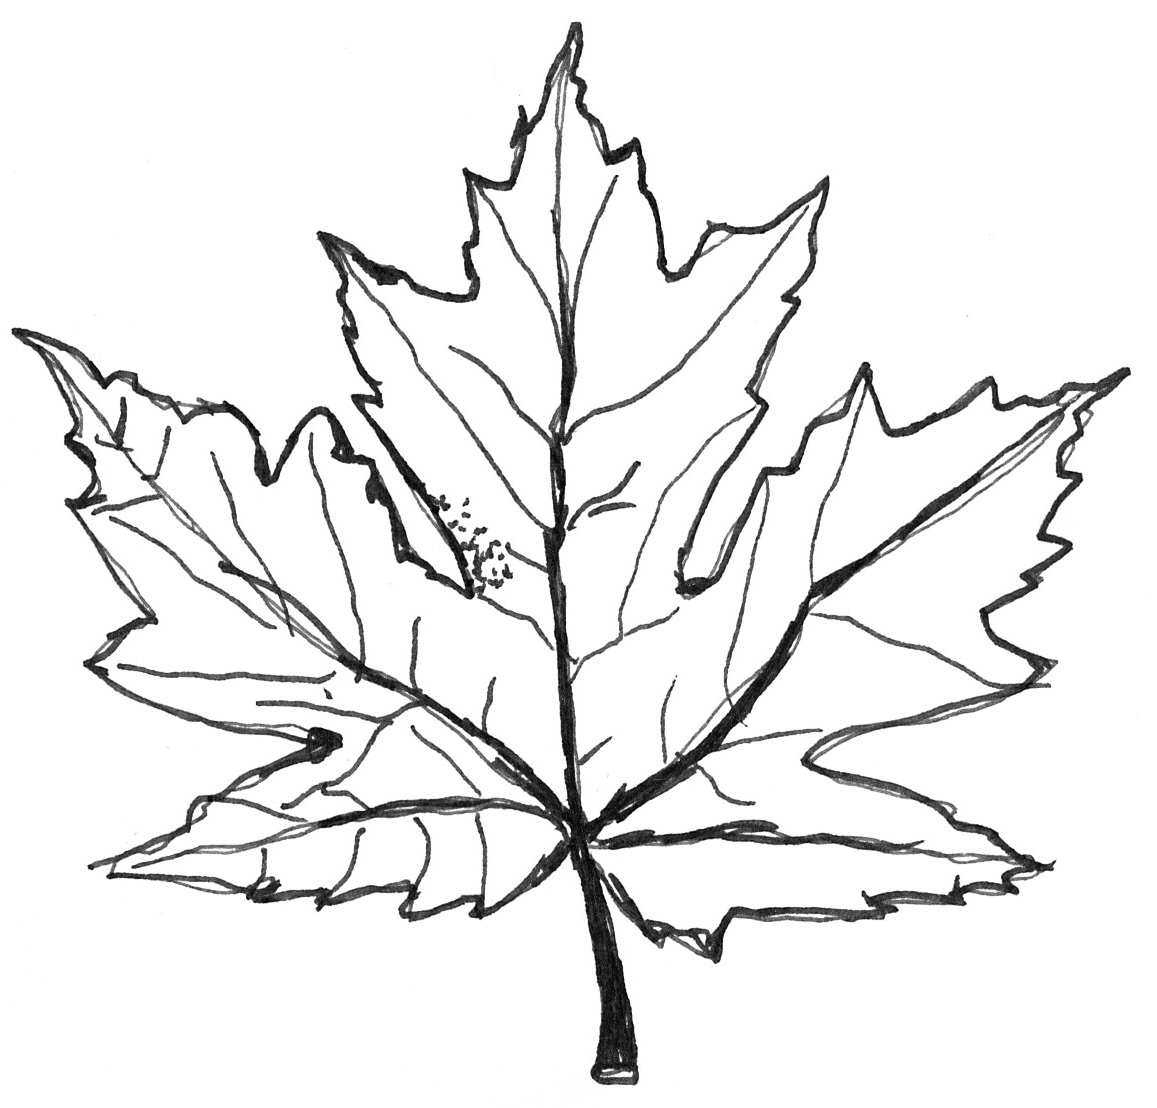 Japanese Maple Tree Drawing At Getdrawings